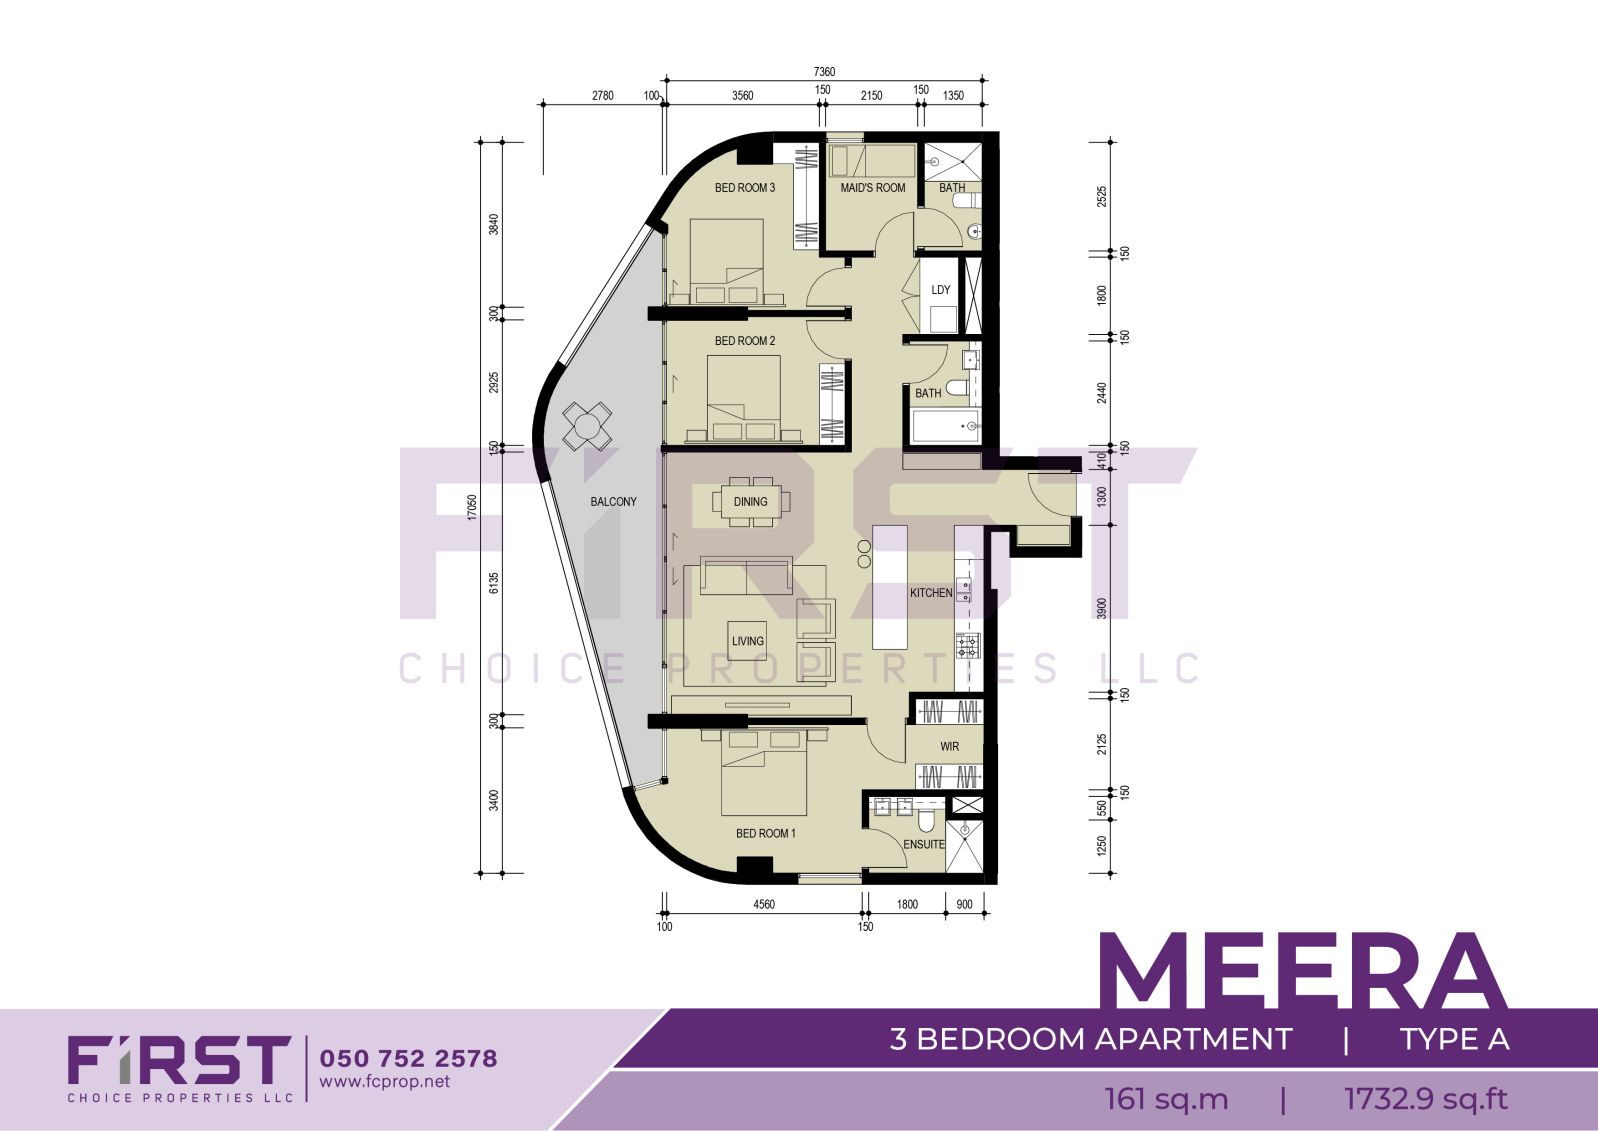 Floor Plan of 3 Bedroom Apartment Type A in Meera Shams Al Reem Island Abu Dhabi UAE 161 sq.m 1732.9 sq.ft.jpg